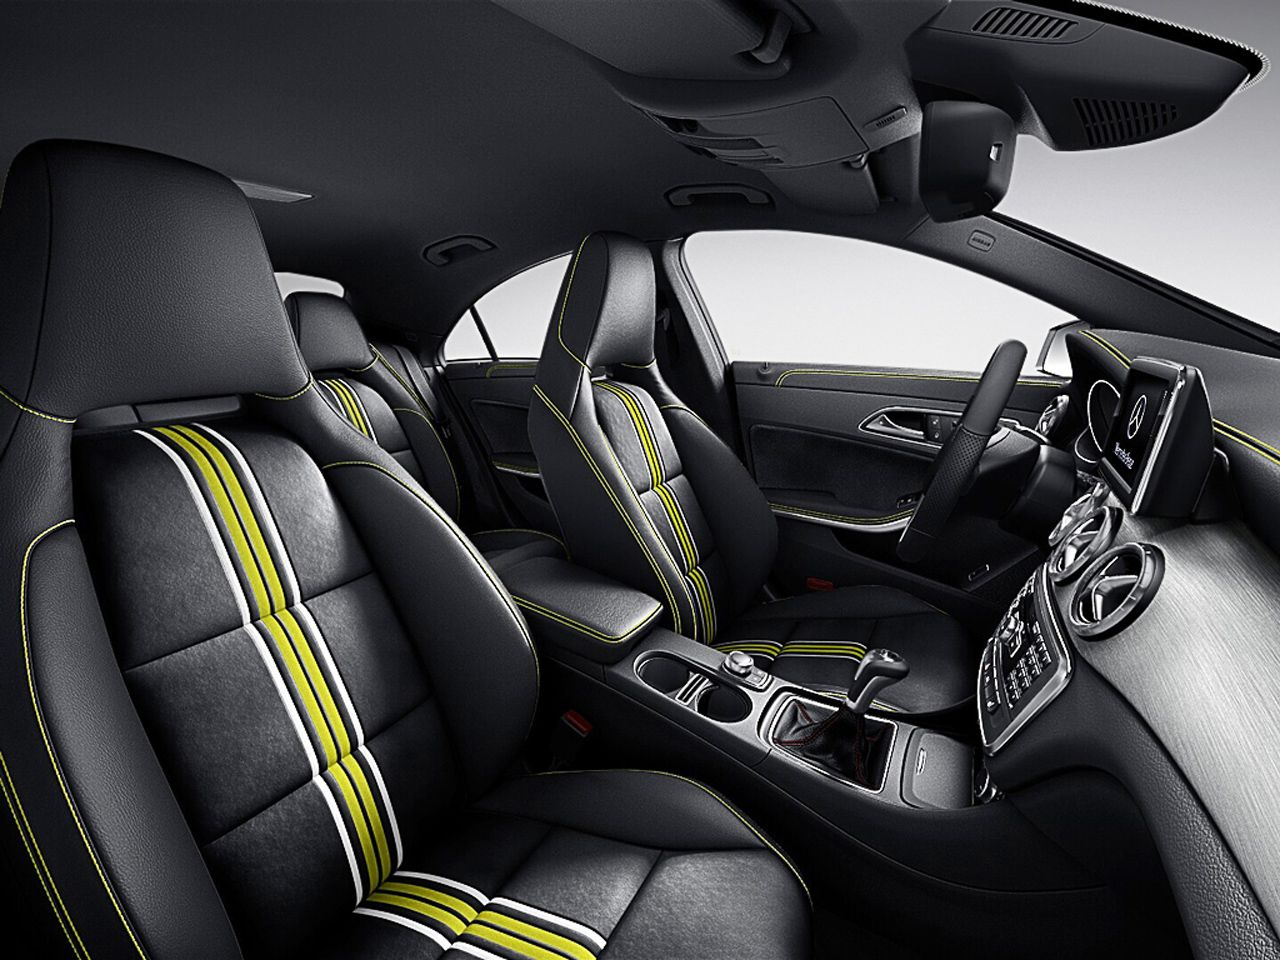 Mercedes CLA Edition 1 Interior With Black DINAMICA MB Tex With Green Piping